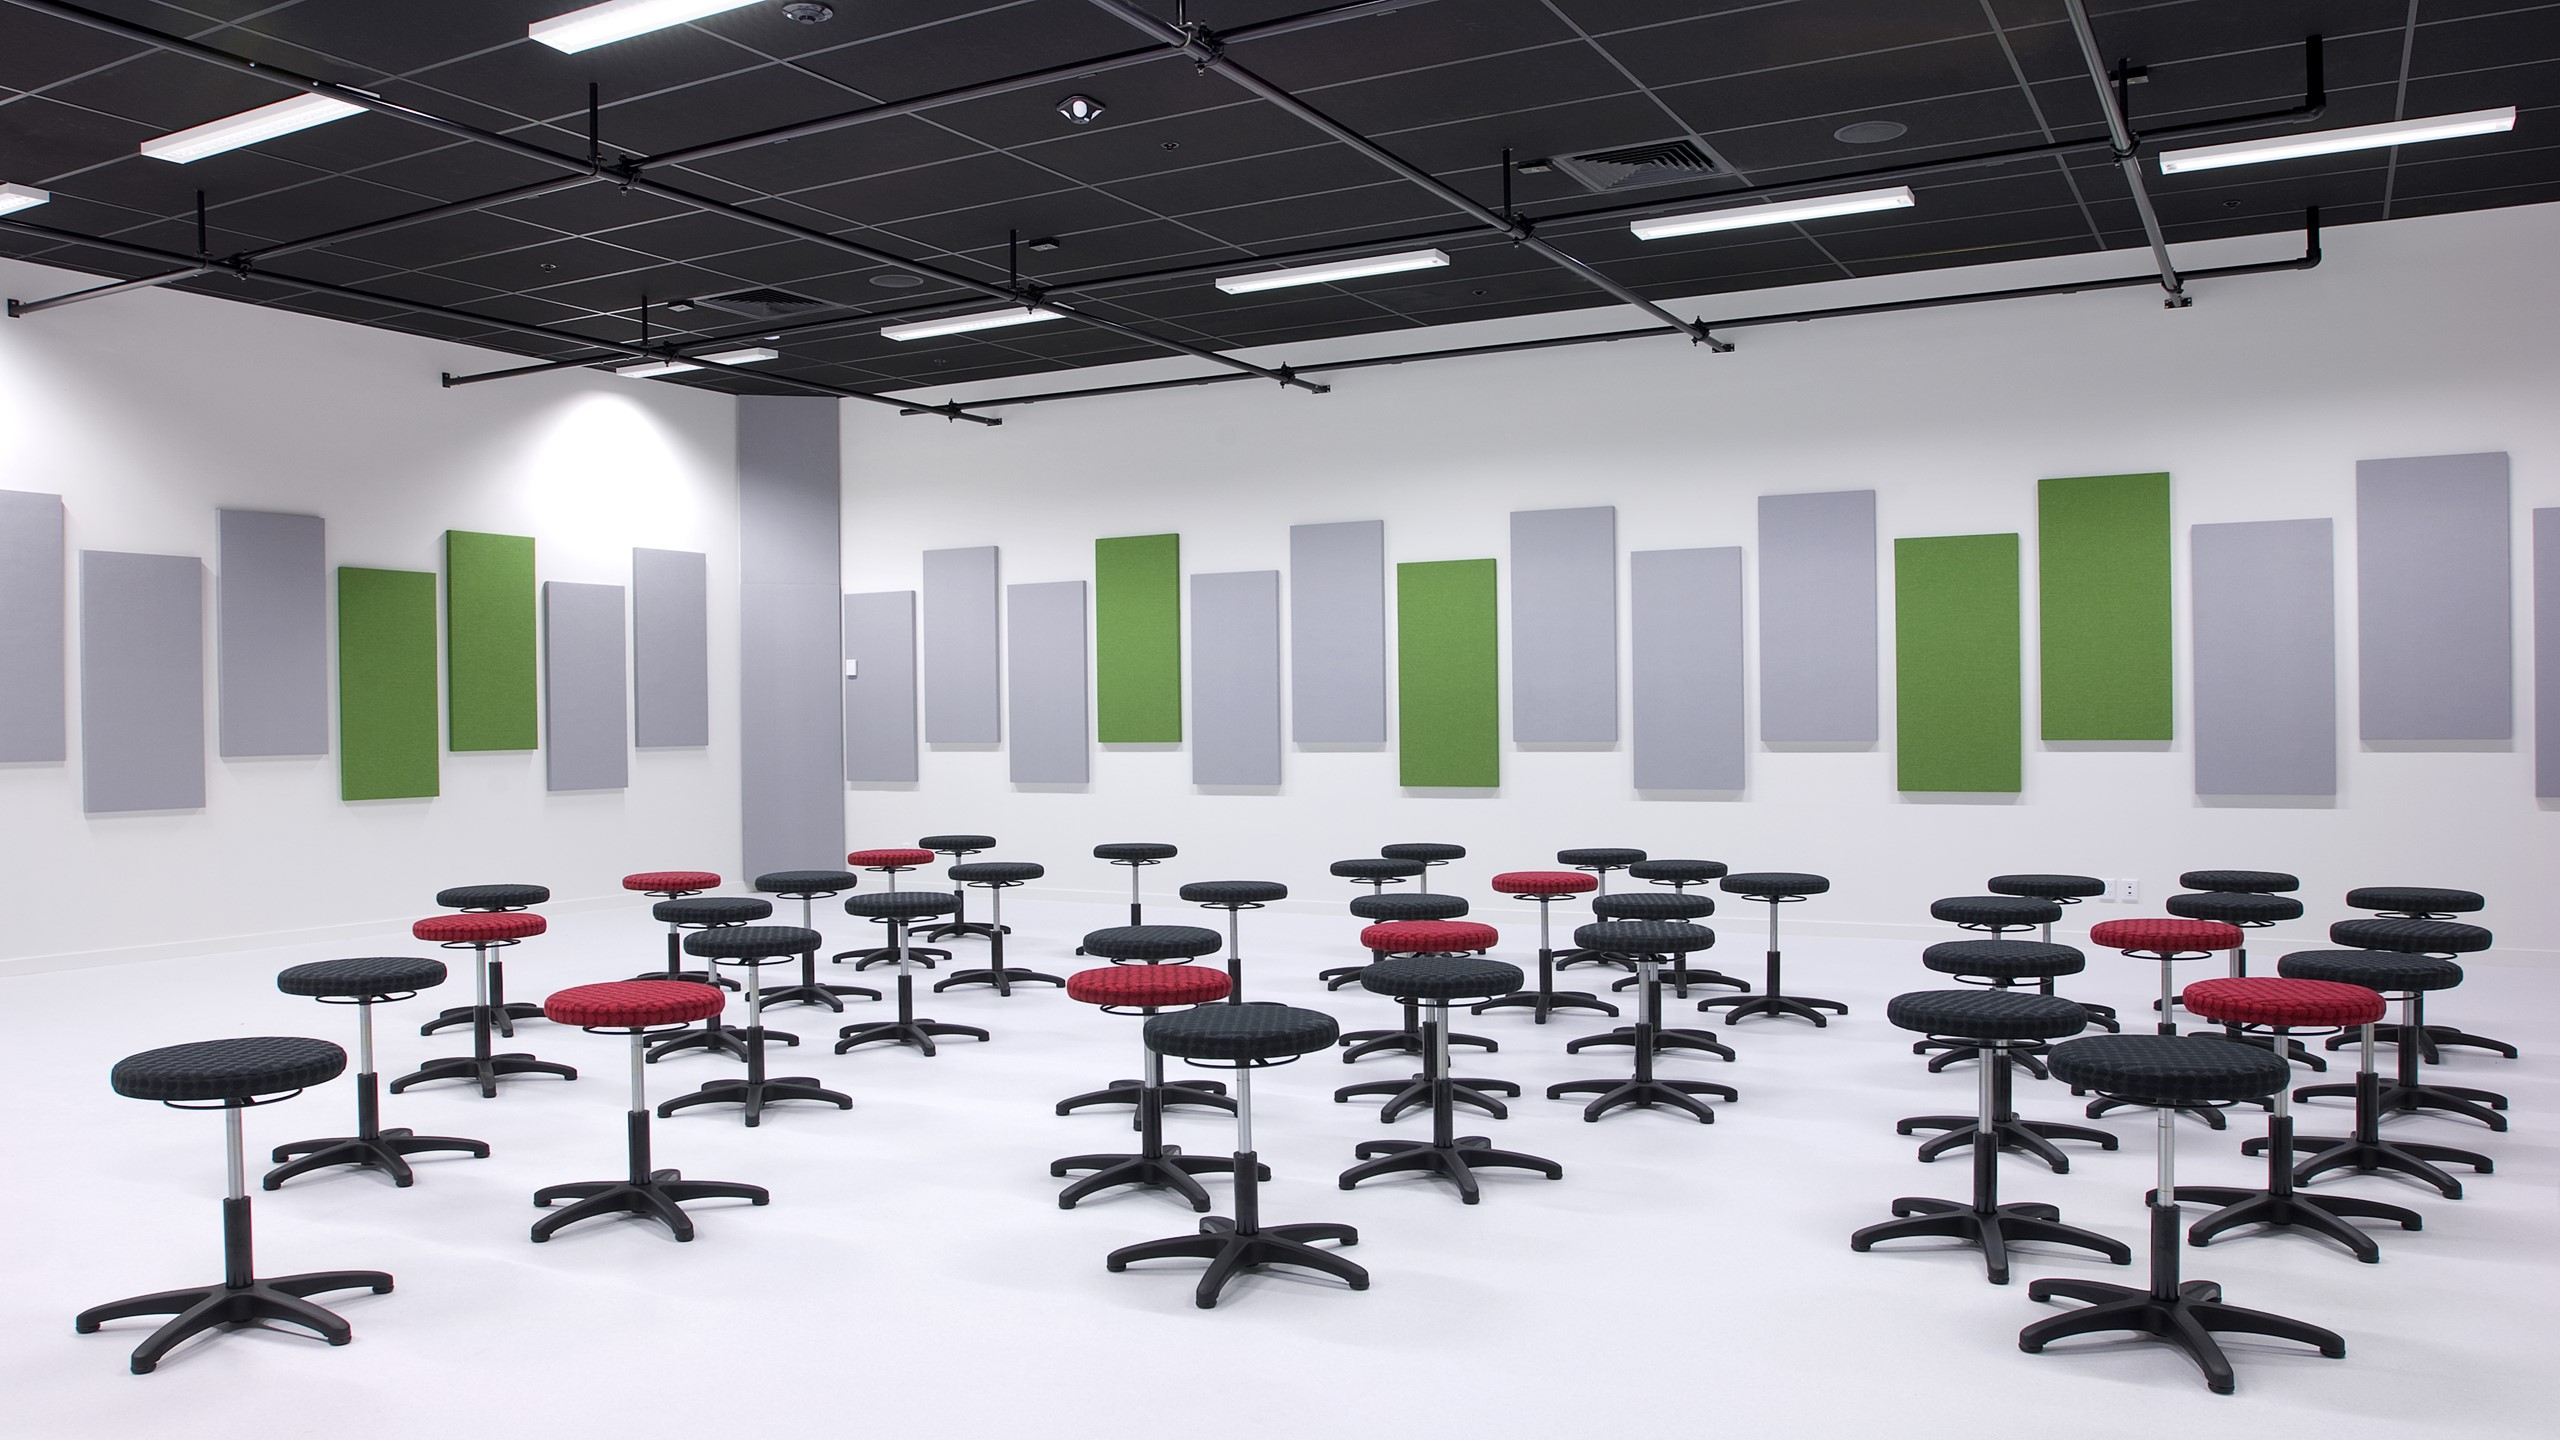 Hobsonville Point Intermediate Music Room showing direct fixed rectangular Fabwall panels wrapped in grey and green fabrics